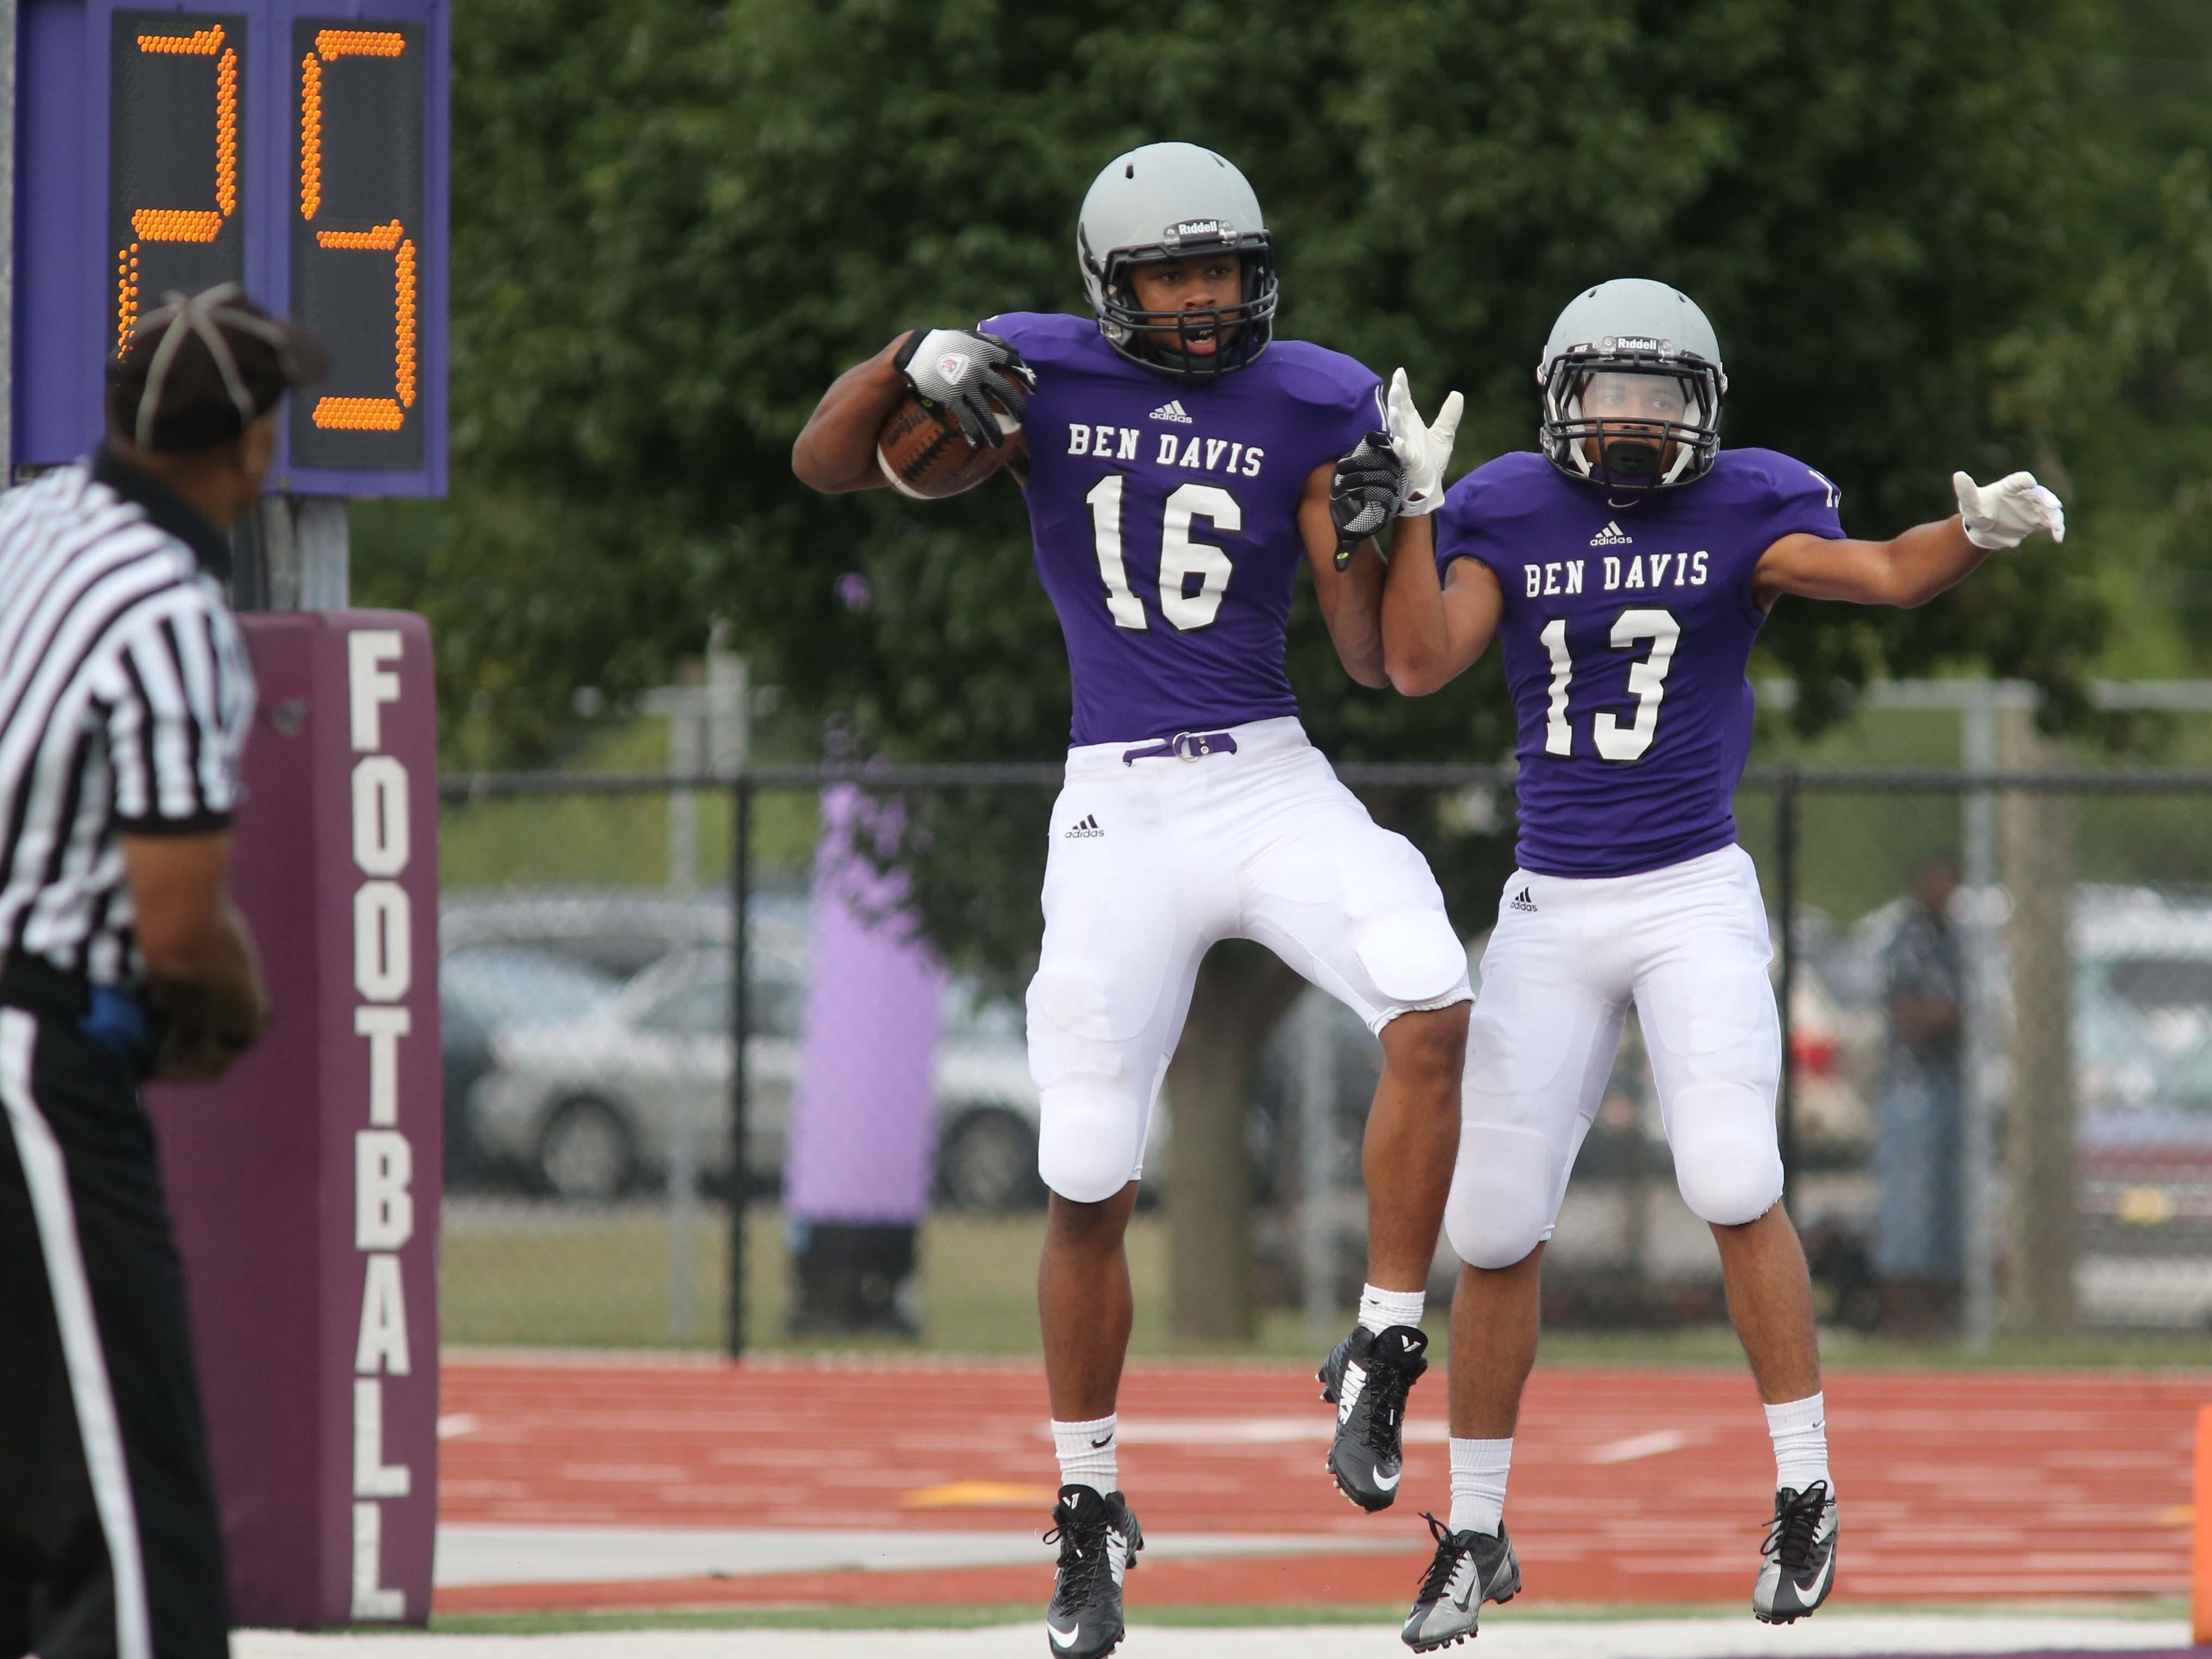 Stori Emerson and Rashawn Bond celebrate an Emerson touchdown reception. Ben Davis hosted Westfield in a football scrimmage Friday August 15, 2014.